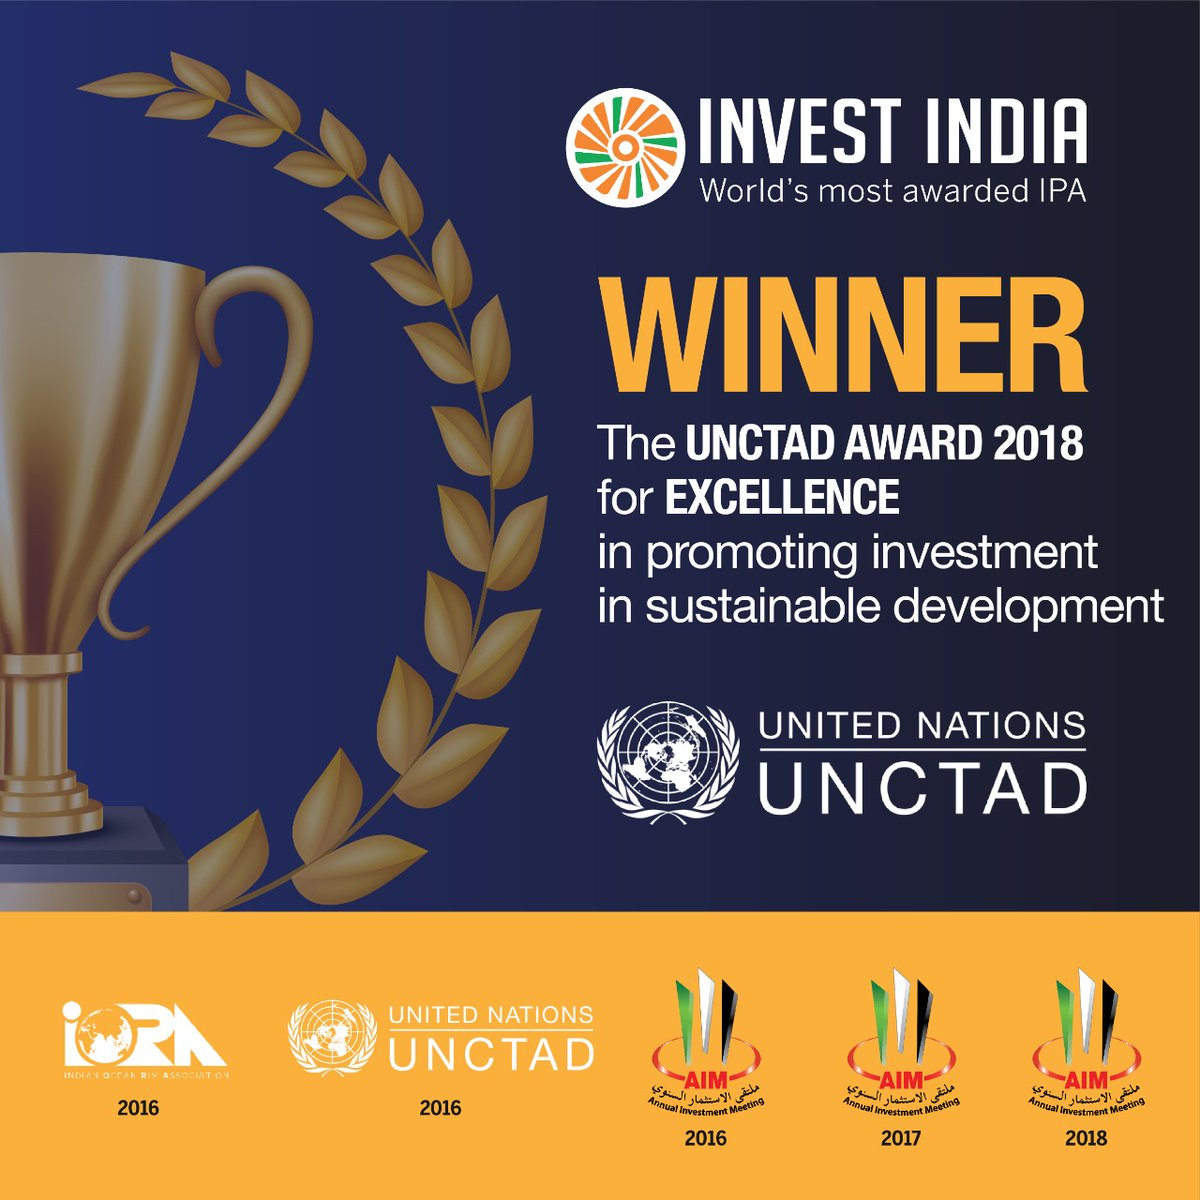 Invest India most awarded investment promotion agency in the world (Photo courtesy: Invest India, Twitter